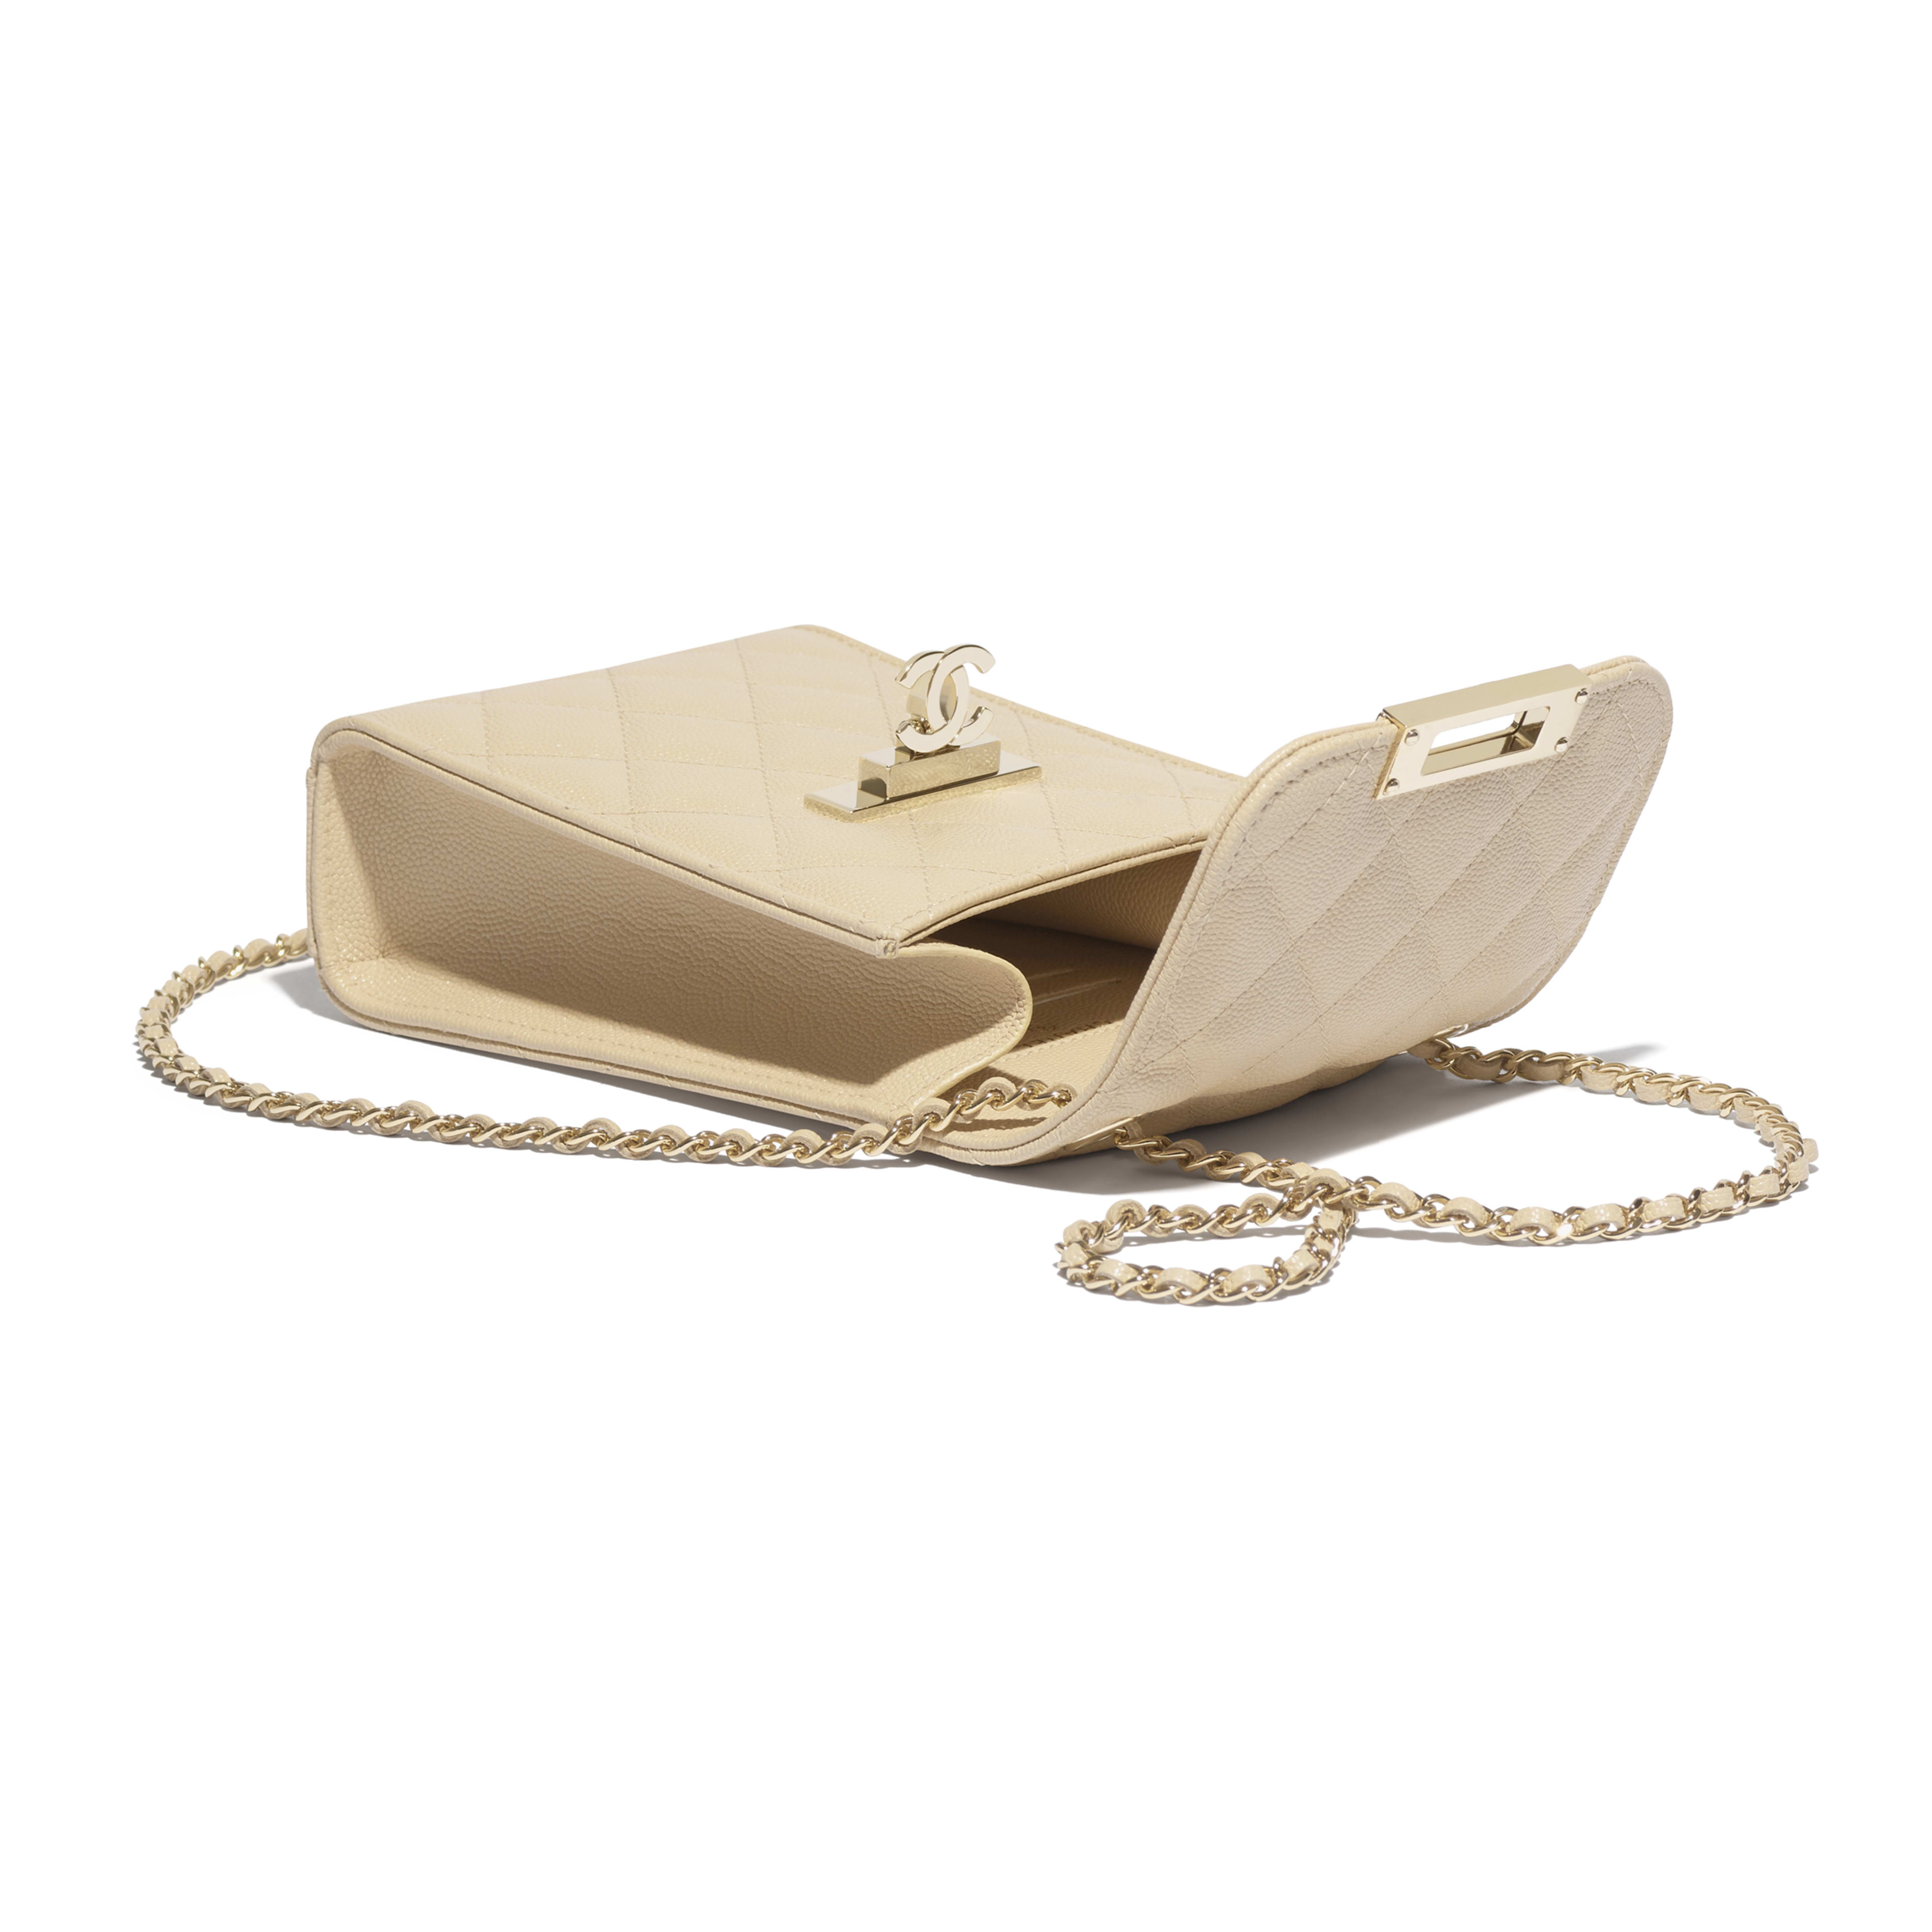 Clutch With Chain - Beige - Grained Goatskin & Gold Metal - Extra view - see full sized version